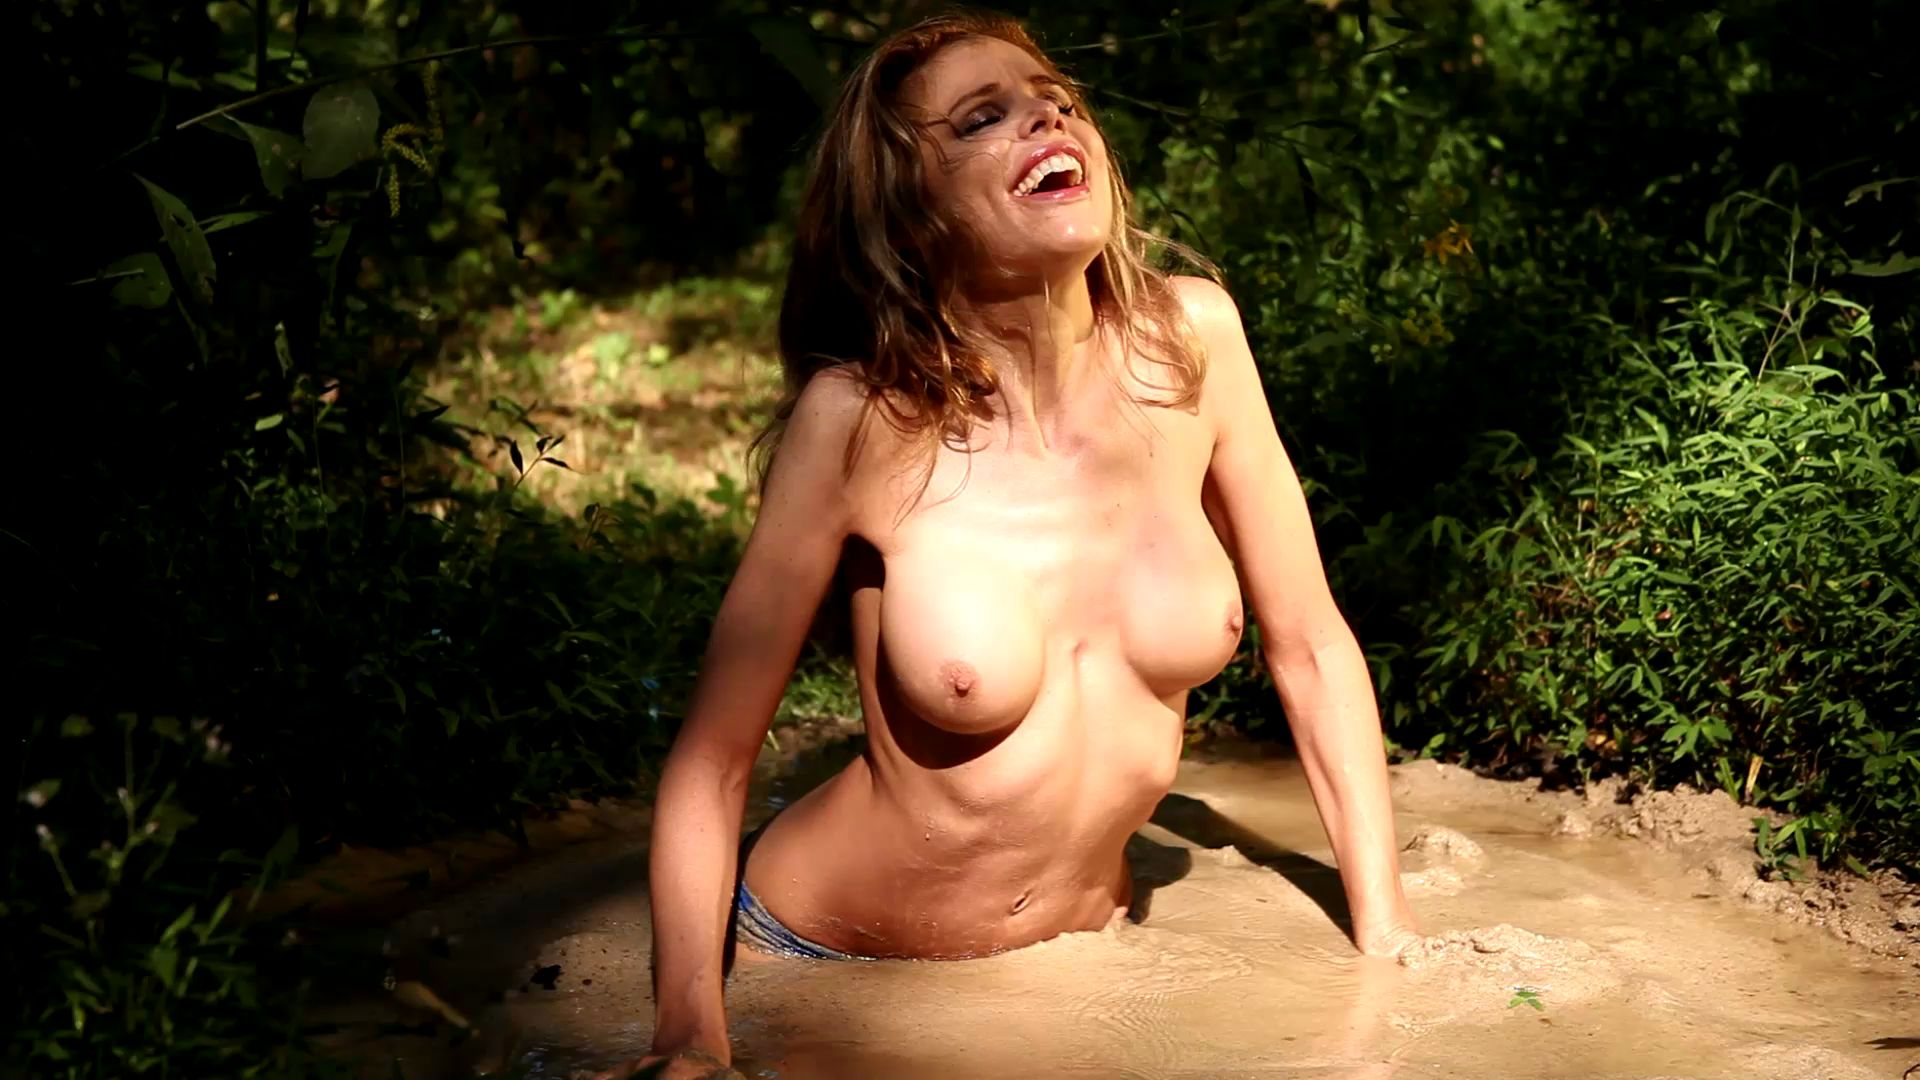 Candle Boxxx in quicksand Candle-aroused-in-real-quicks_14